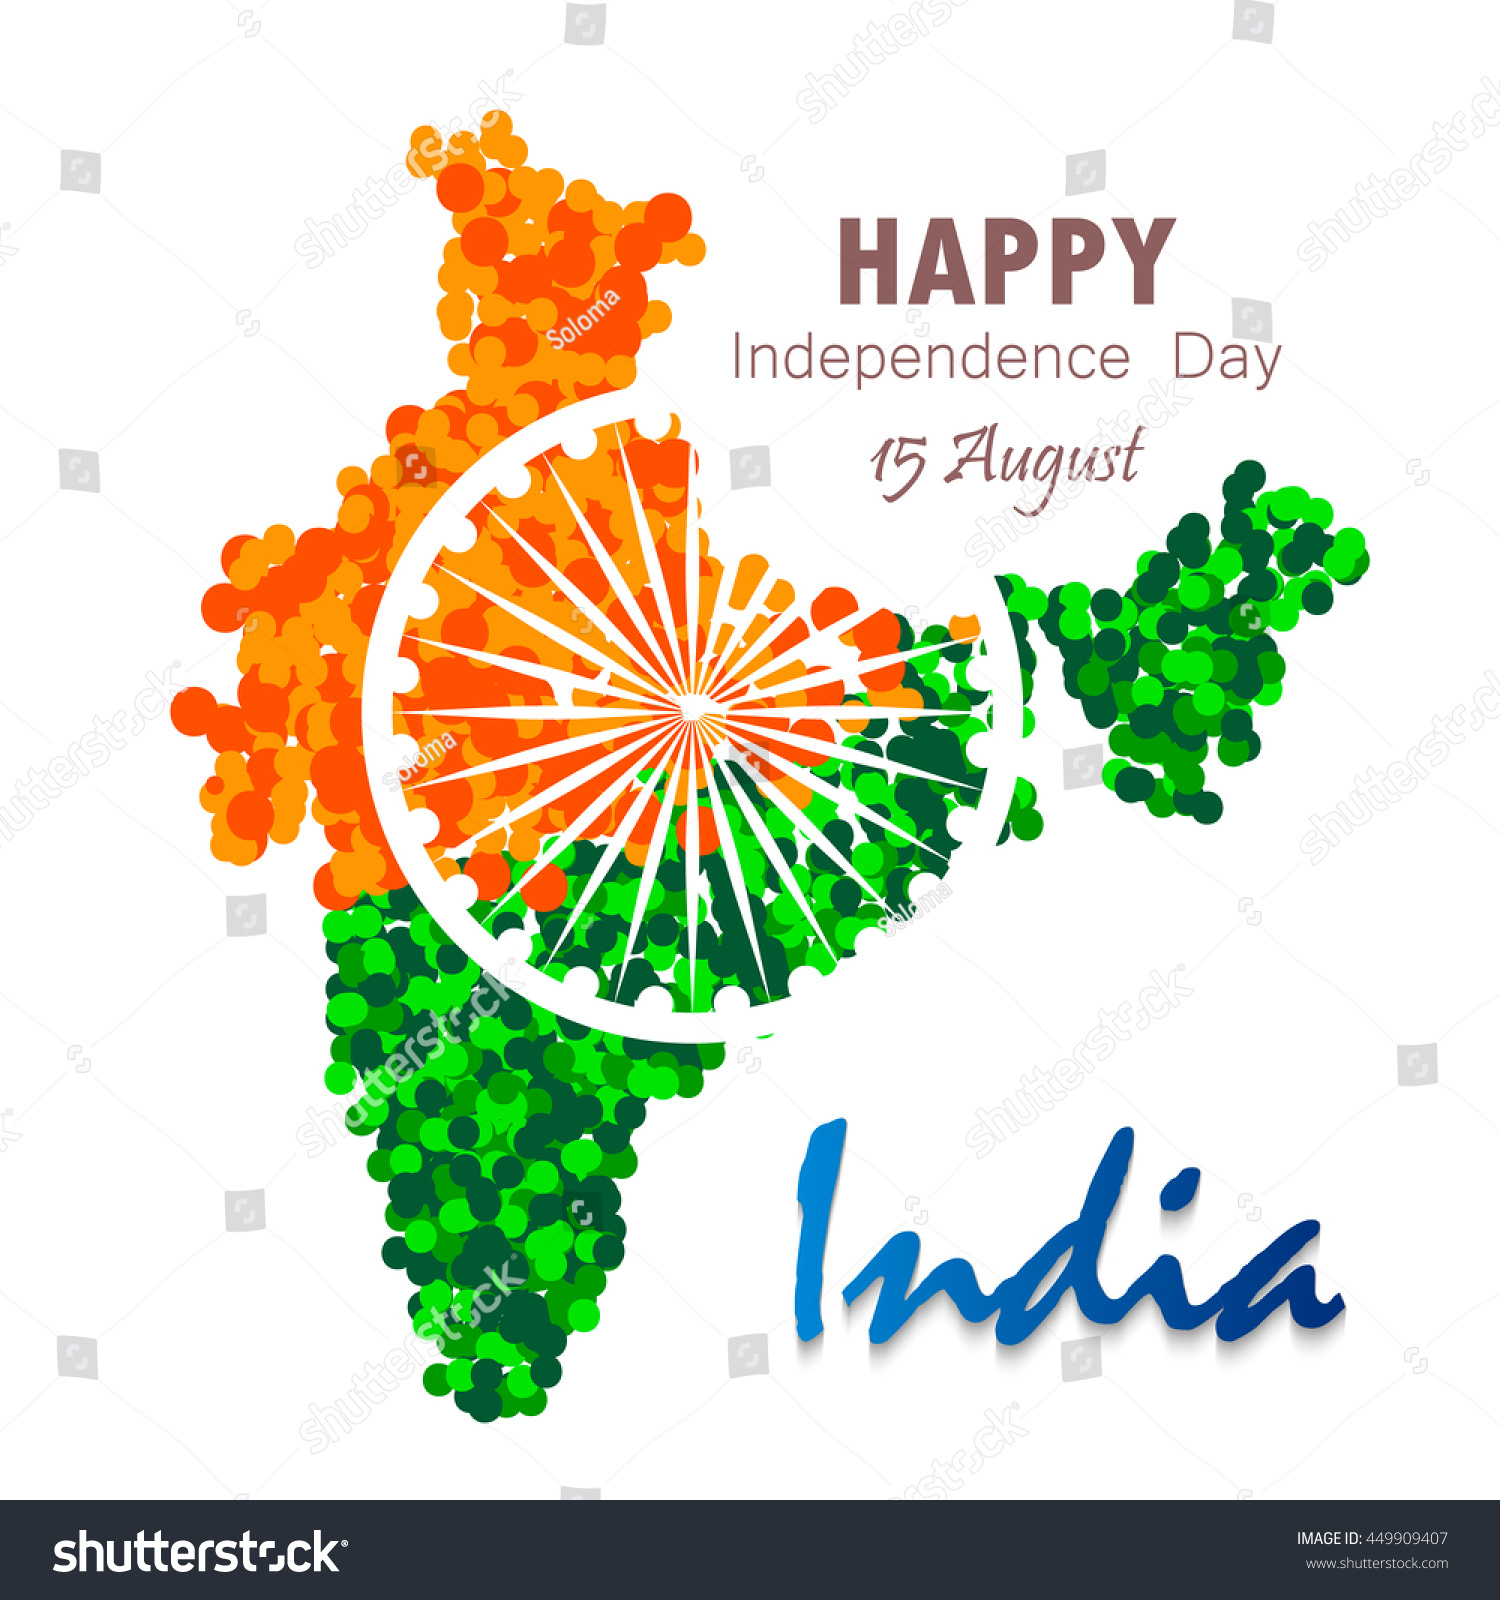 national holiday in india independence day Independence day of india over the country as a national holiday of india to the freedom fighter and leaders of the indian independence movement who.